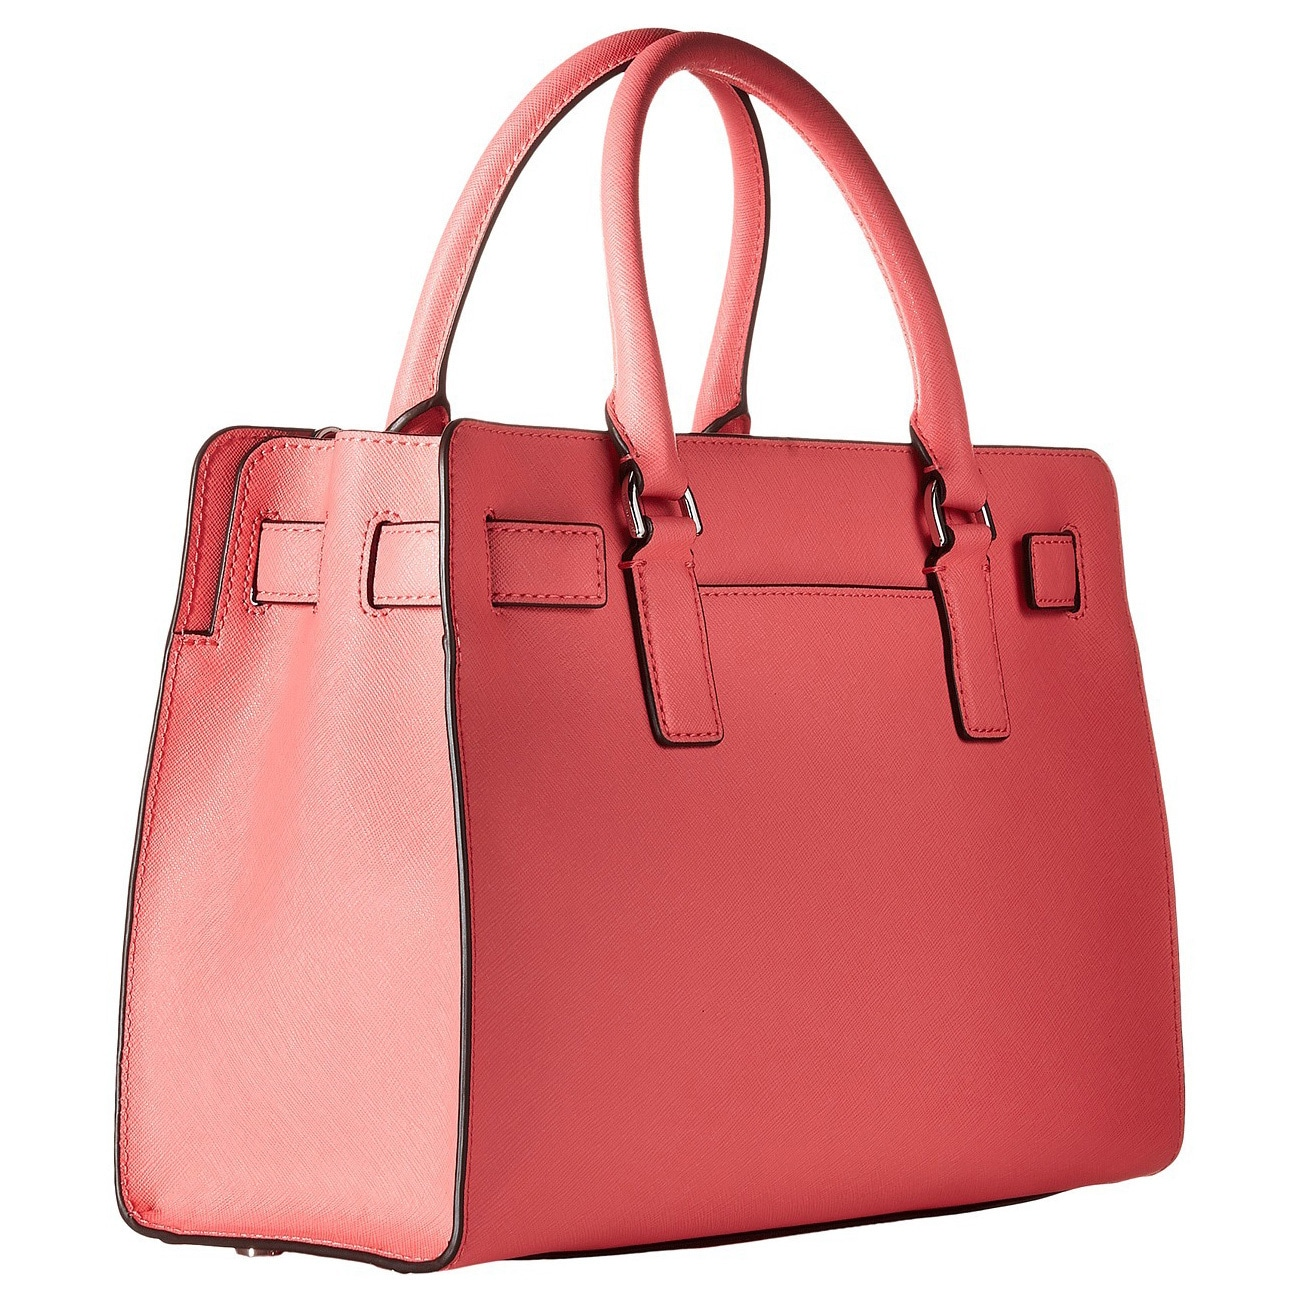 f89348550e28 Shop Michael Kors Dillon Coral East West Satchel Handbag - Free Shipping  Today - Overstock - 11191220